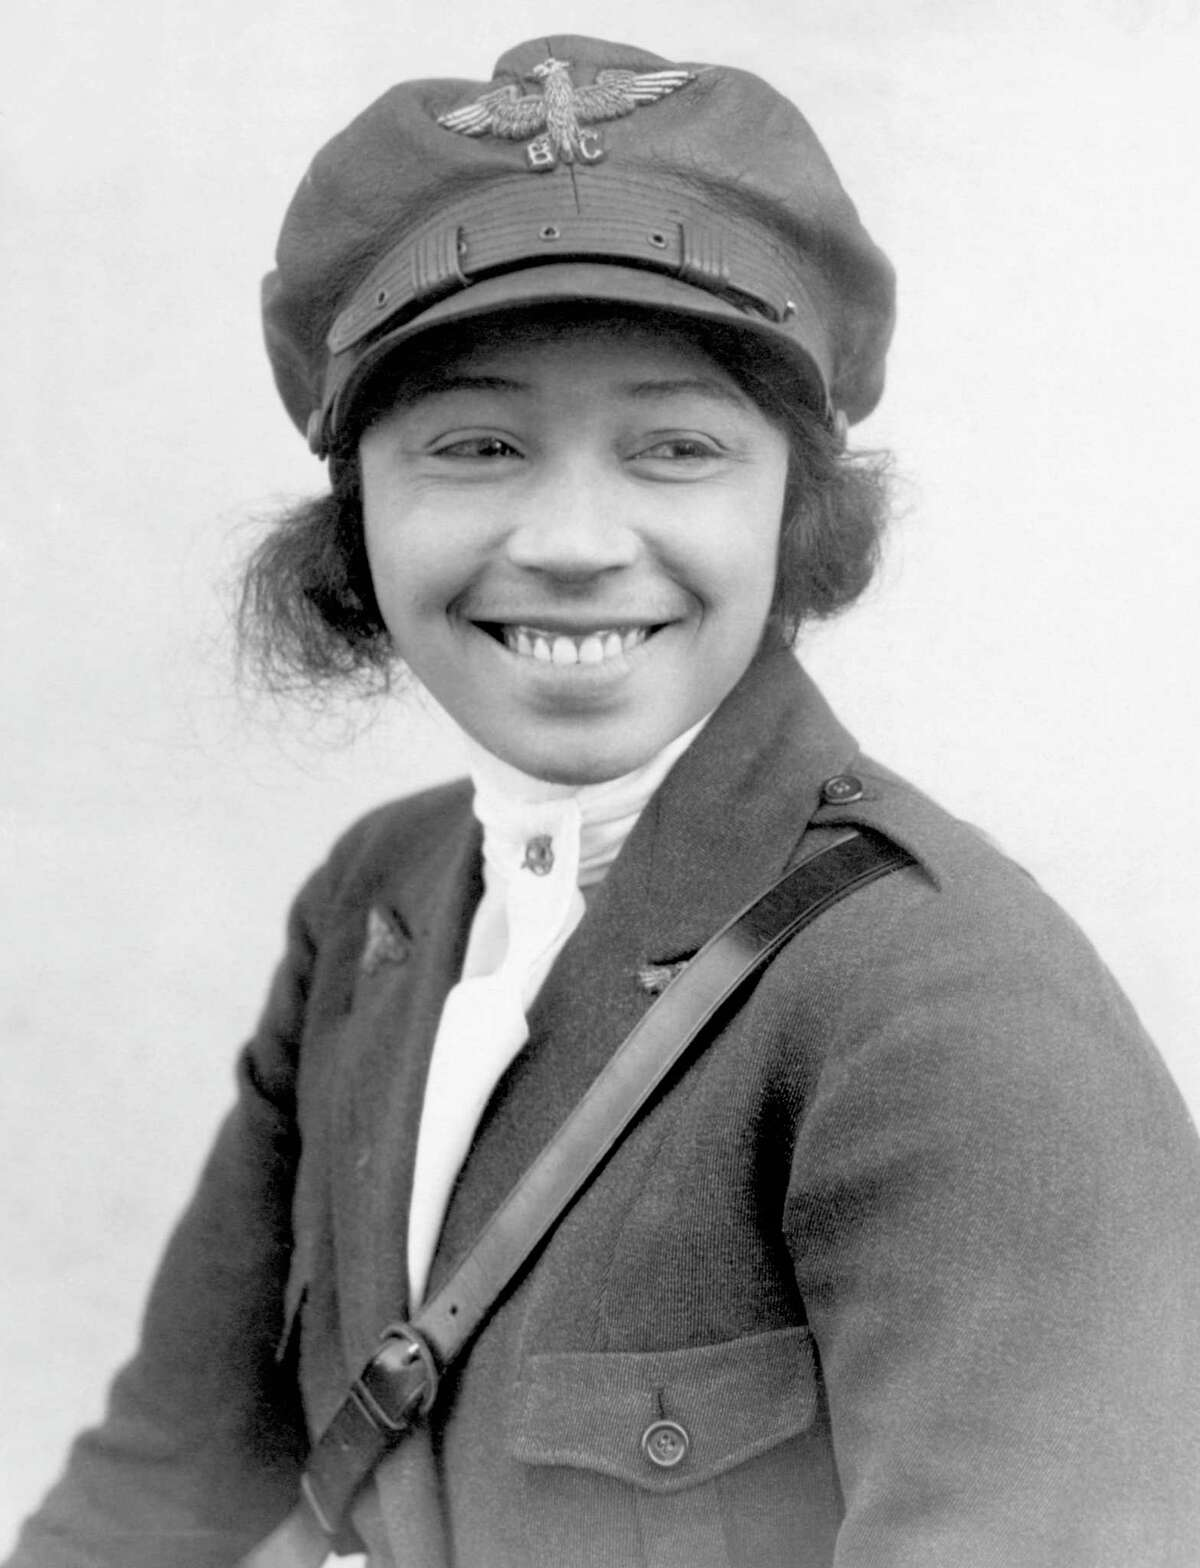 Bessie Coleman was the first black woman aviatrix.On June 15, 1921, she earned her international pilot's license from the French Fédération Aéronautique Internationale.She is pictured circa 1923. (George Rinhart/Corbis via Getty Images)